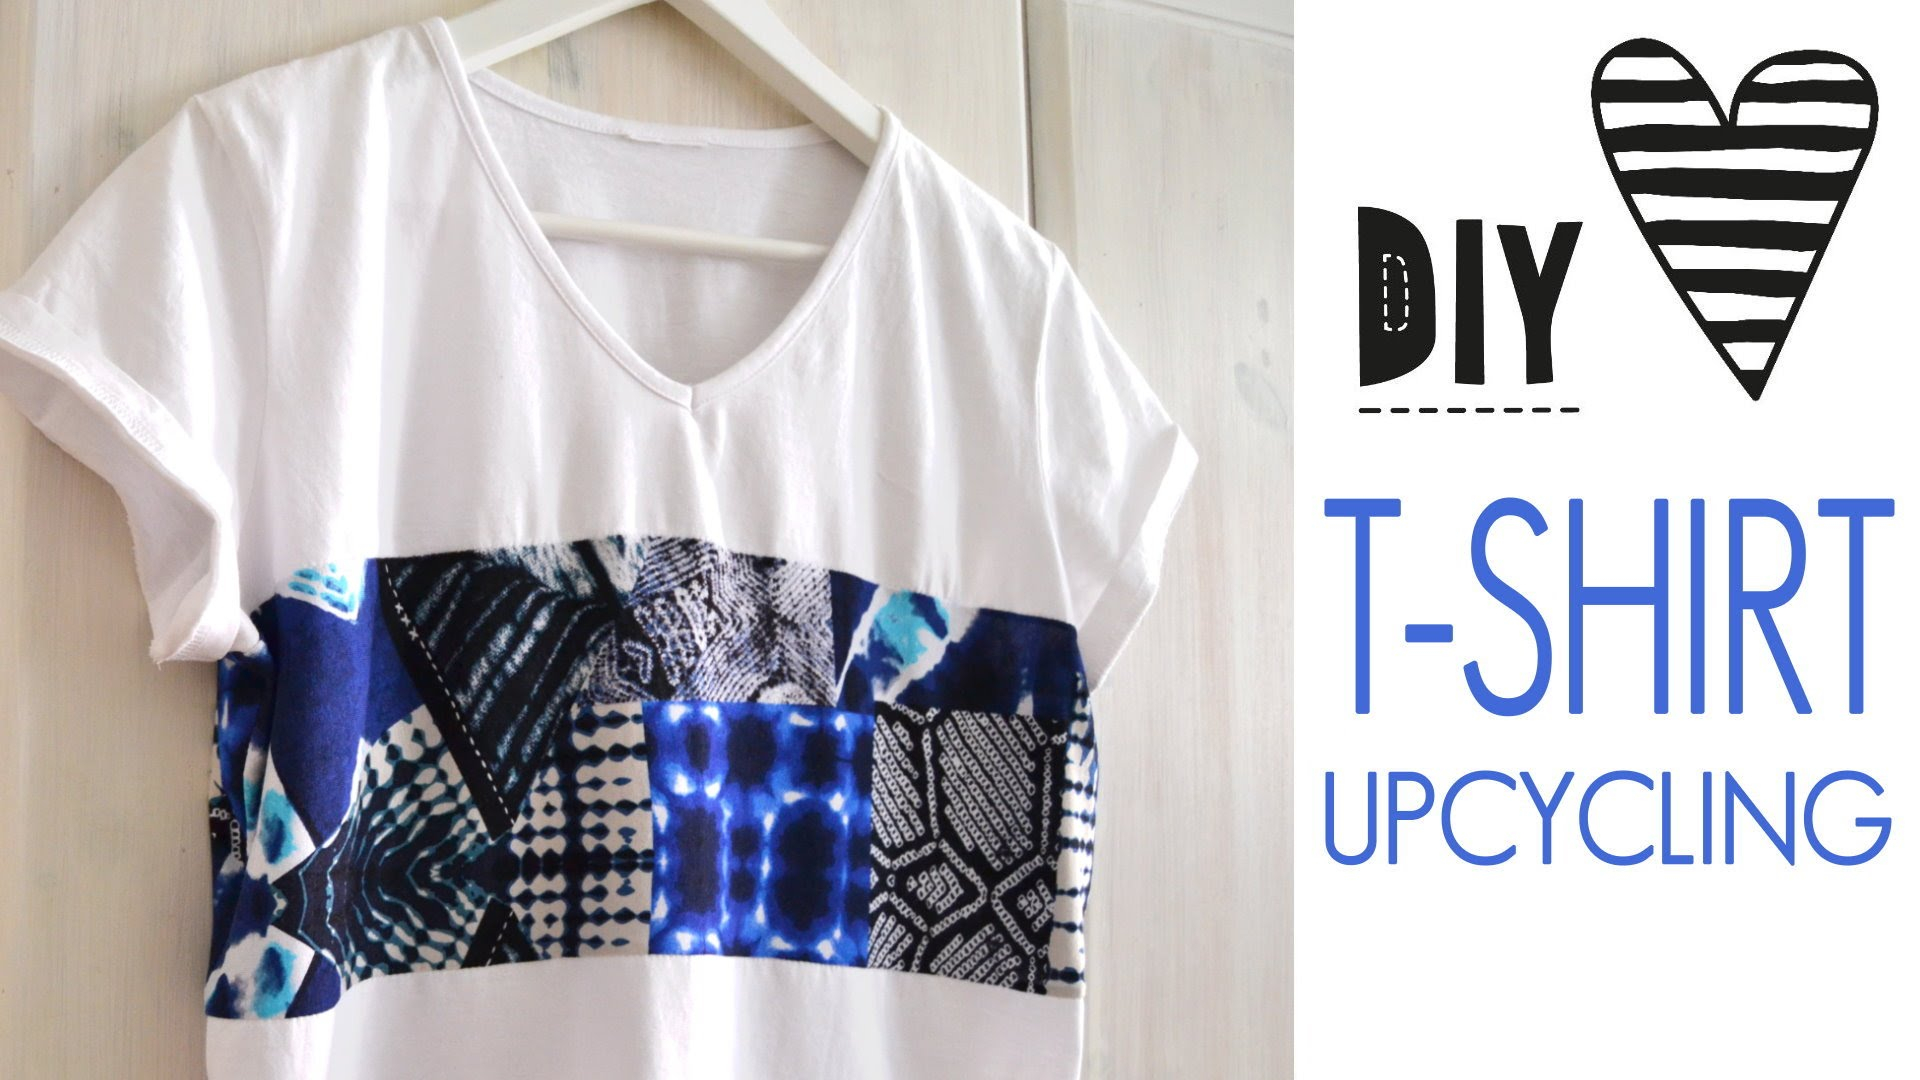 Sewing Upcycle Ideas Diy Upcycling T Shirt Pinterest Inspired Quick Easy How To